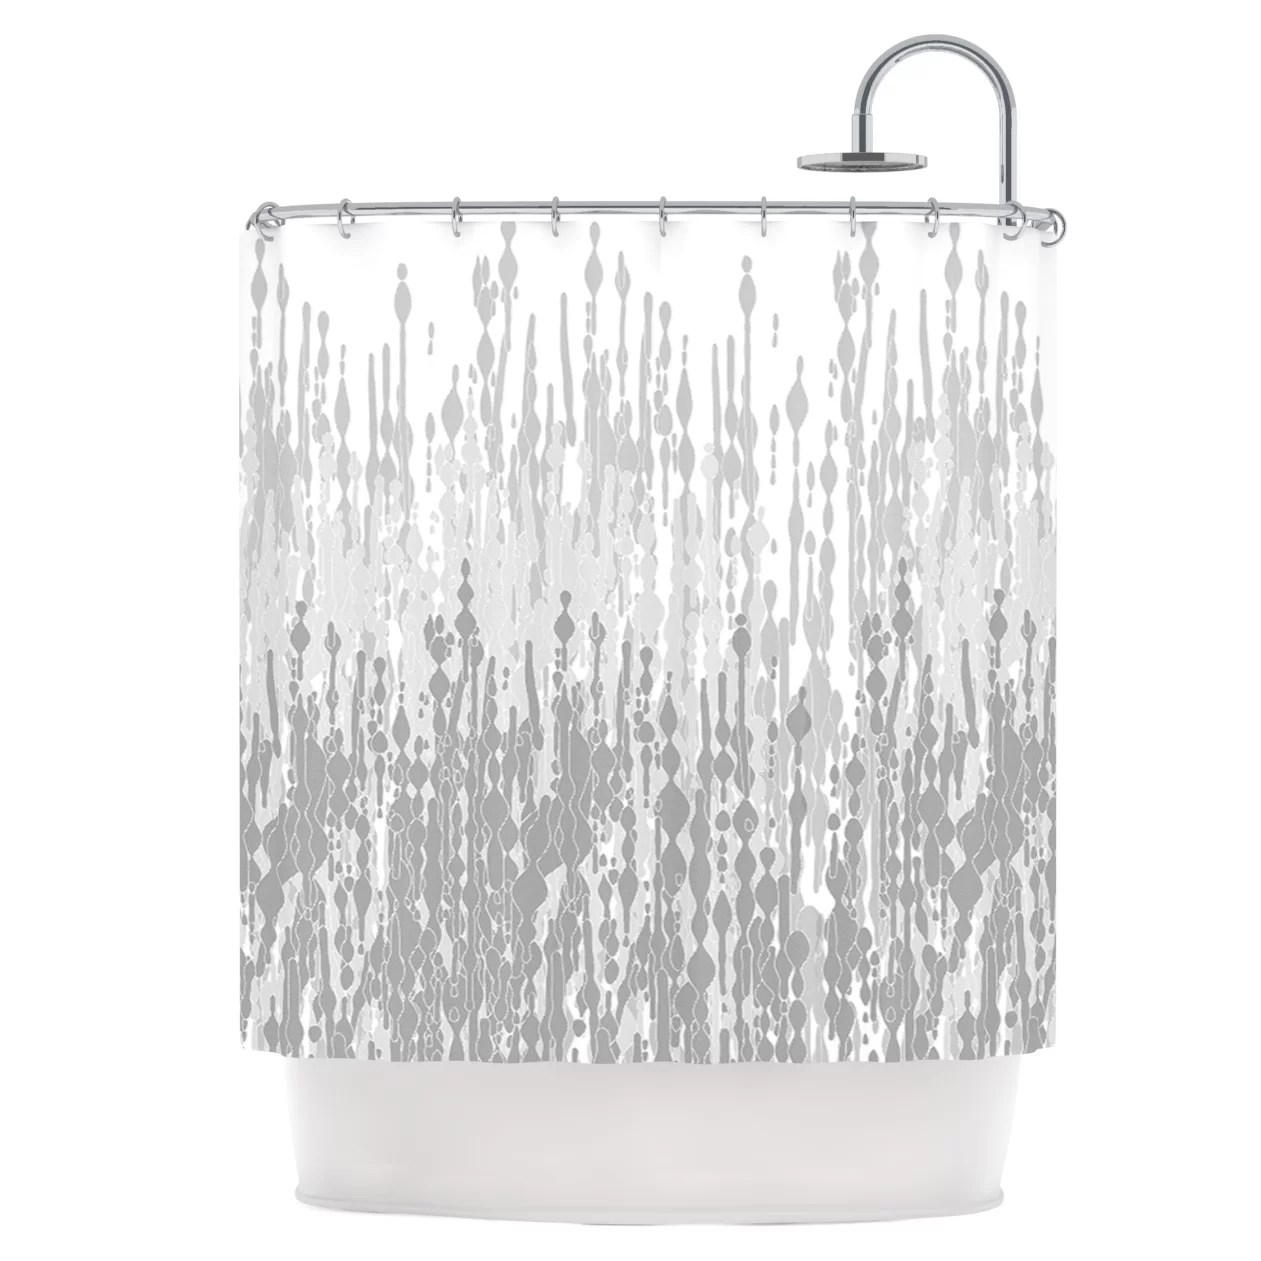 East Urban Home Drops Shower Curtain Wayfair